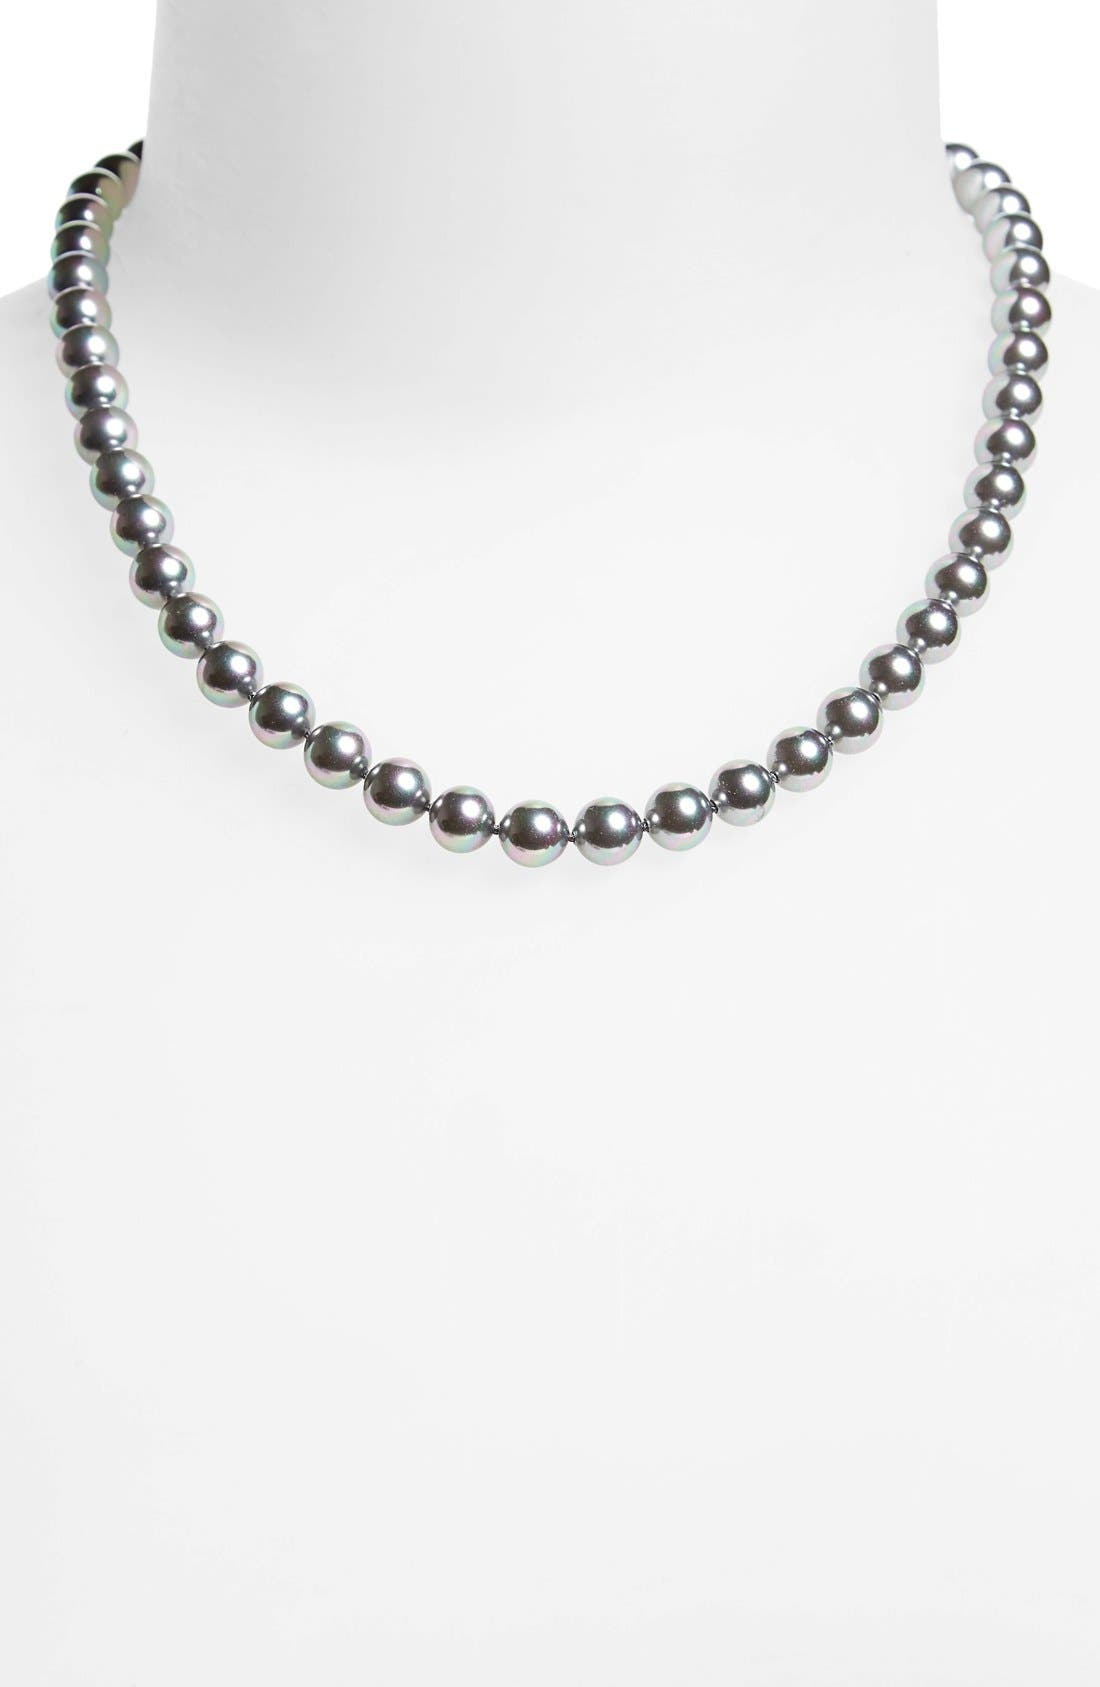 7mm Round Simulated Pearl Strand Necklace,                             Alternate thumbnail 2, color,                             Grey